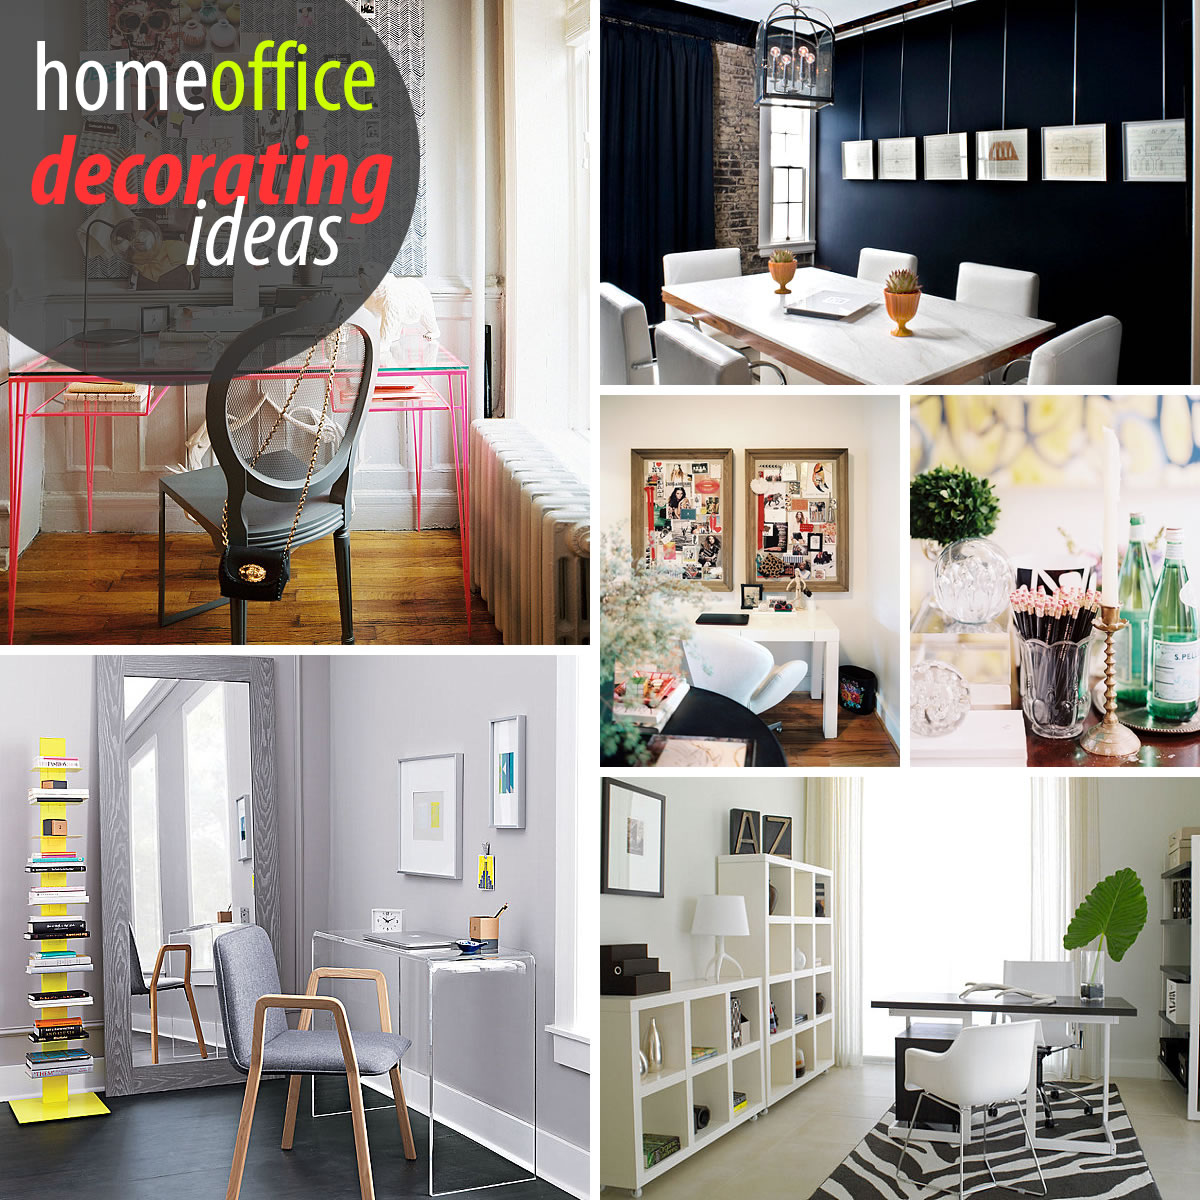 Creative home office decorating ideas for Home and deco